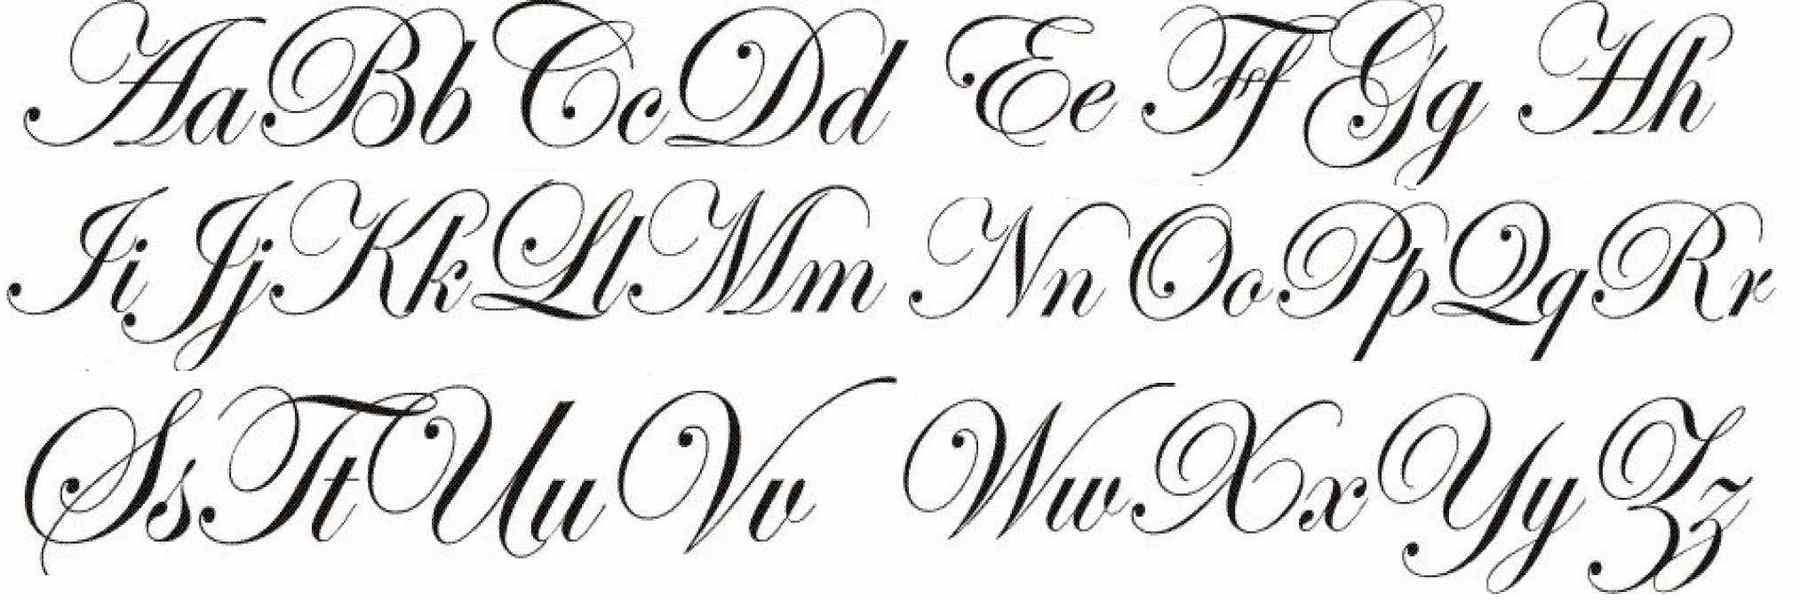 Tattoo Font Ambigram Generator